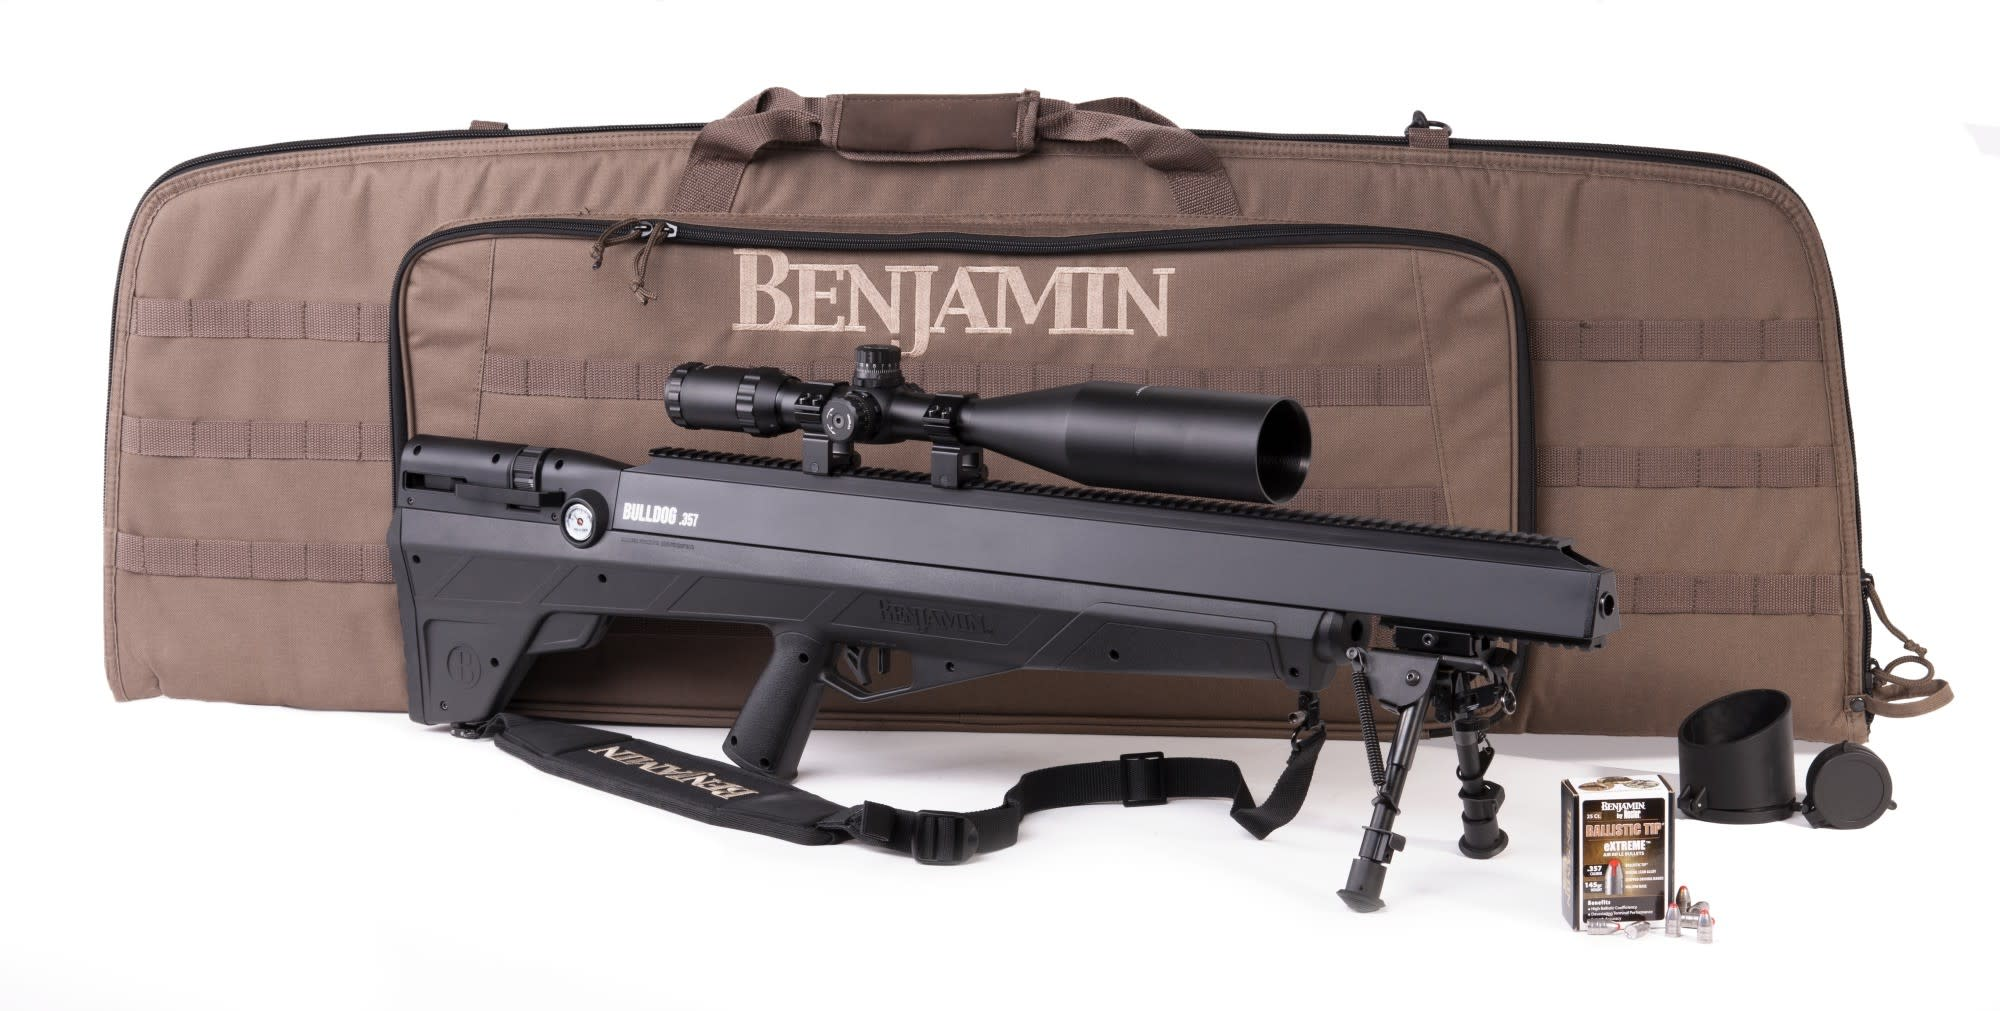 Benjamin Bulldog Sportsman's Pack Air Rifle Pre-Charged Pneumatic (PCP) Bolt Action .357 Pellet with 4-16x56mm scope